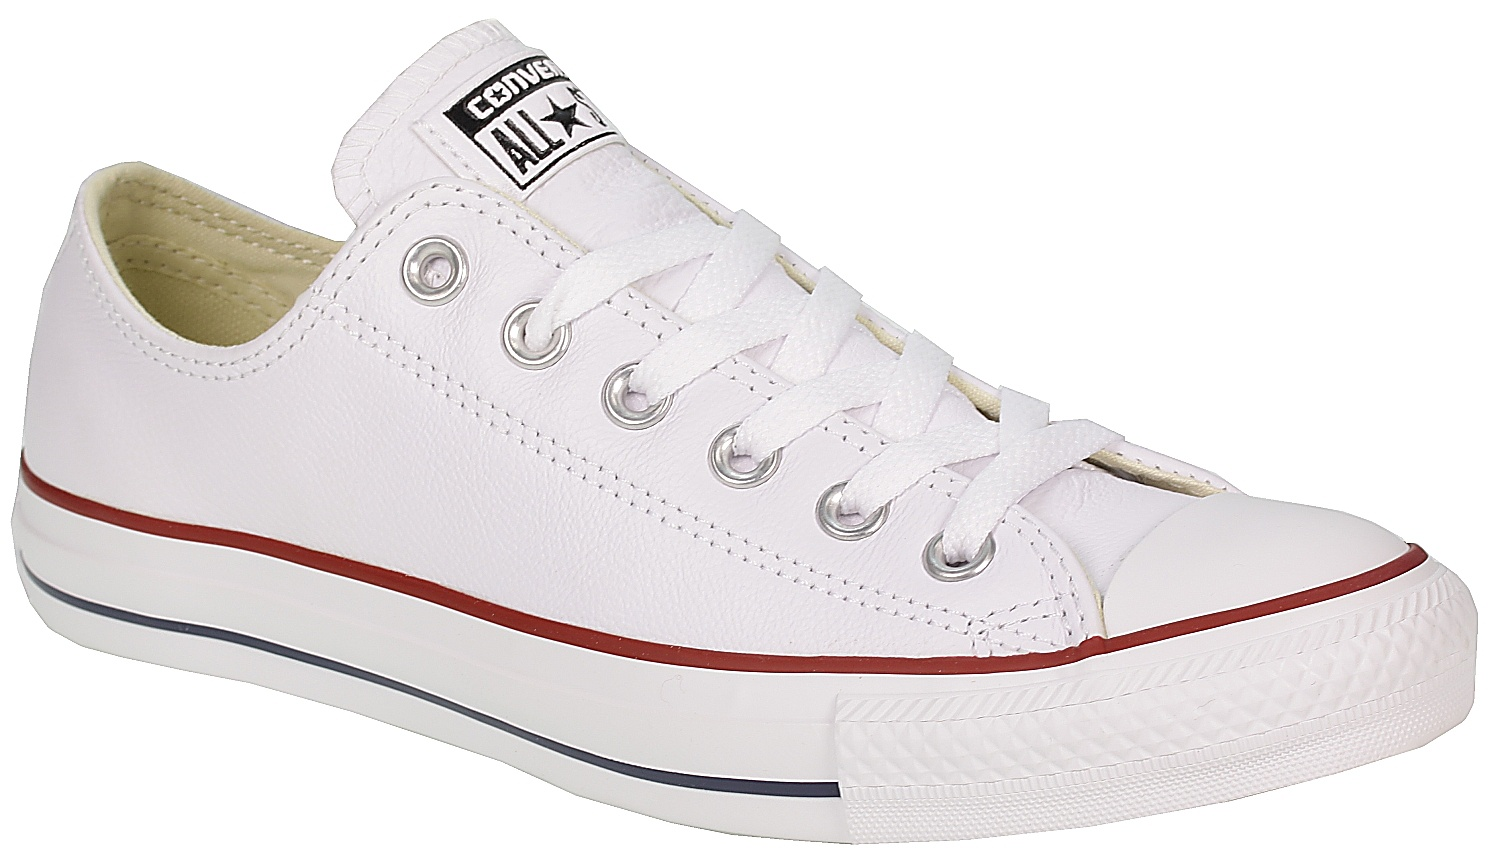 0ba3d1ff2df5 boty Converse Chuck Taylor All Star Leather OX - 132173 White - Snowboard  shop